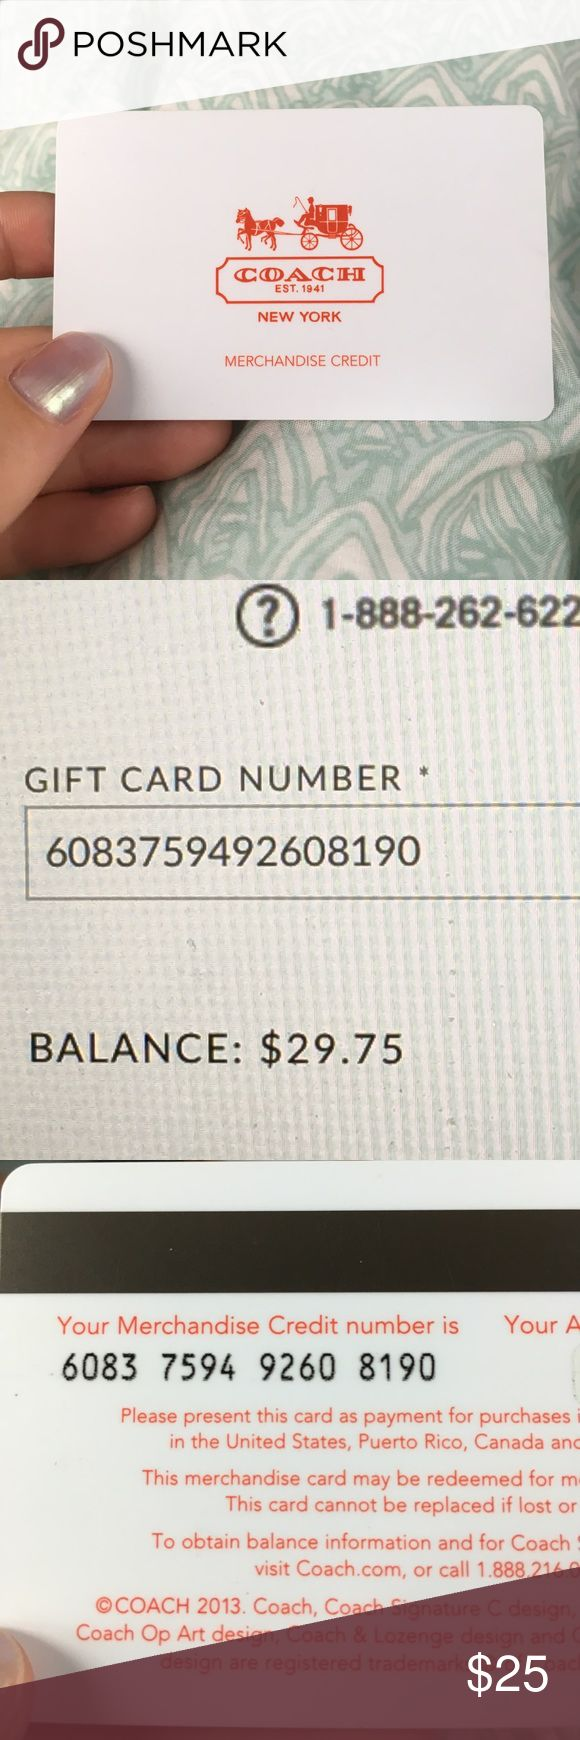 Coach Gift Card Balance: $29.75 Coach Gift Card Balance: $29.75 Coach Other